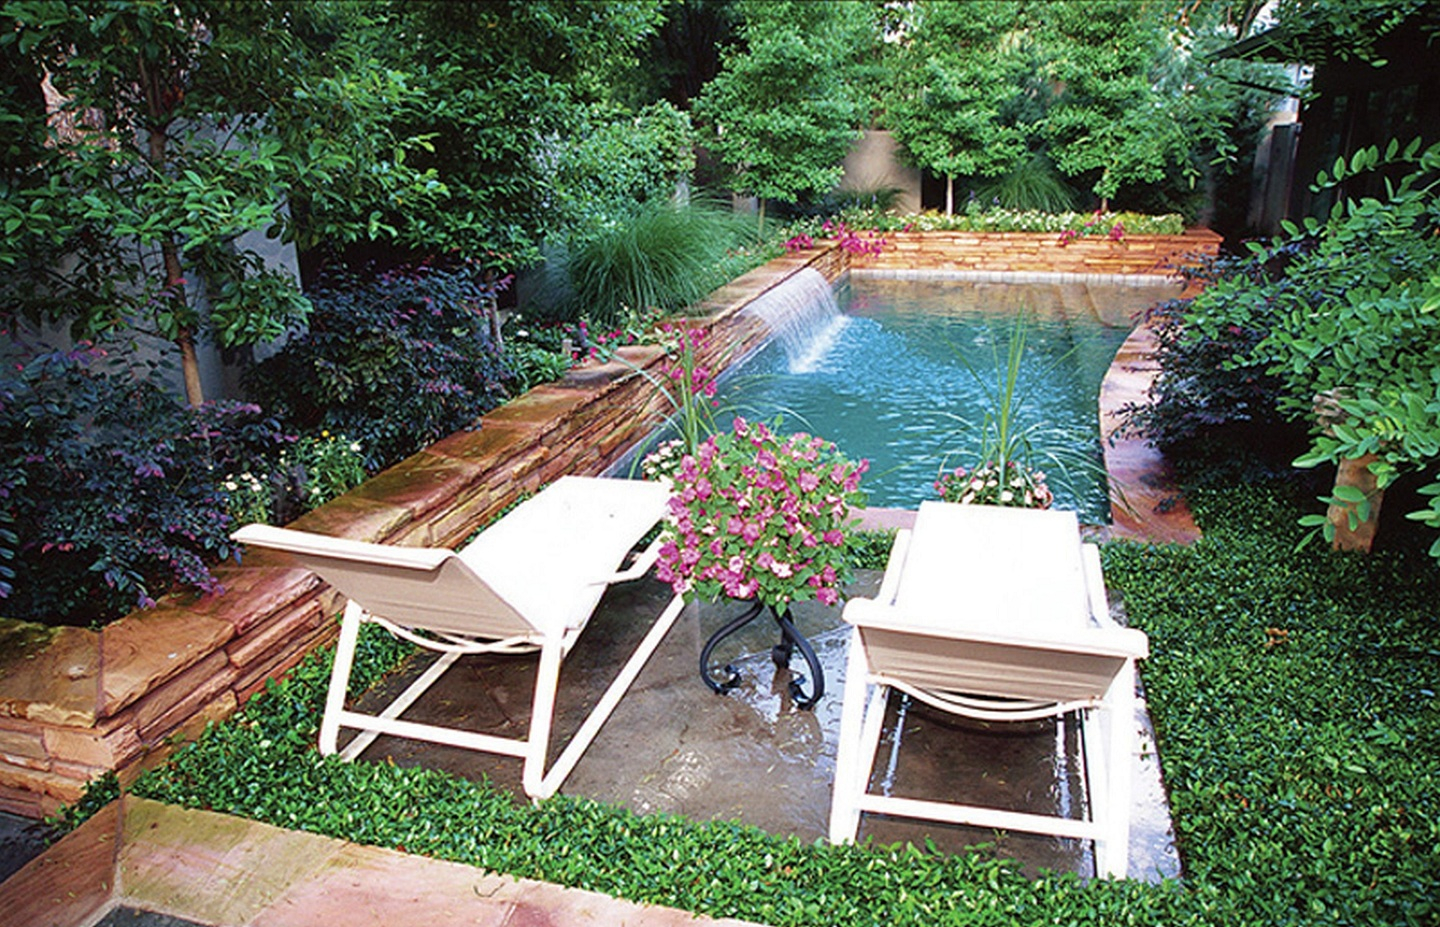 Backyard Fun Ideas Brilliant Decorating Inexpensive Unique For Men with 10 Some of the Coolest Concepts of How to Build Fun Backyard Design Ideas